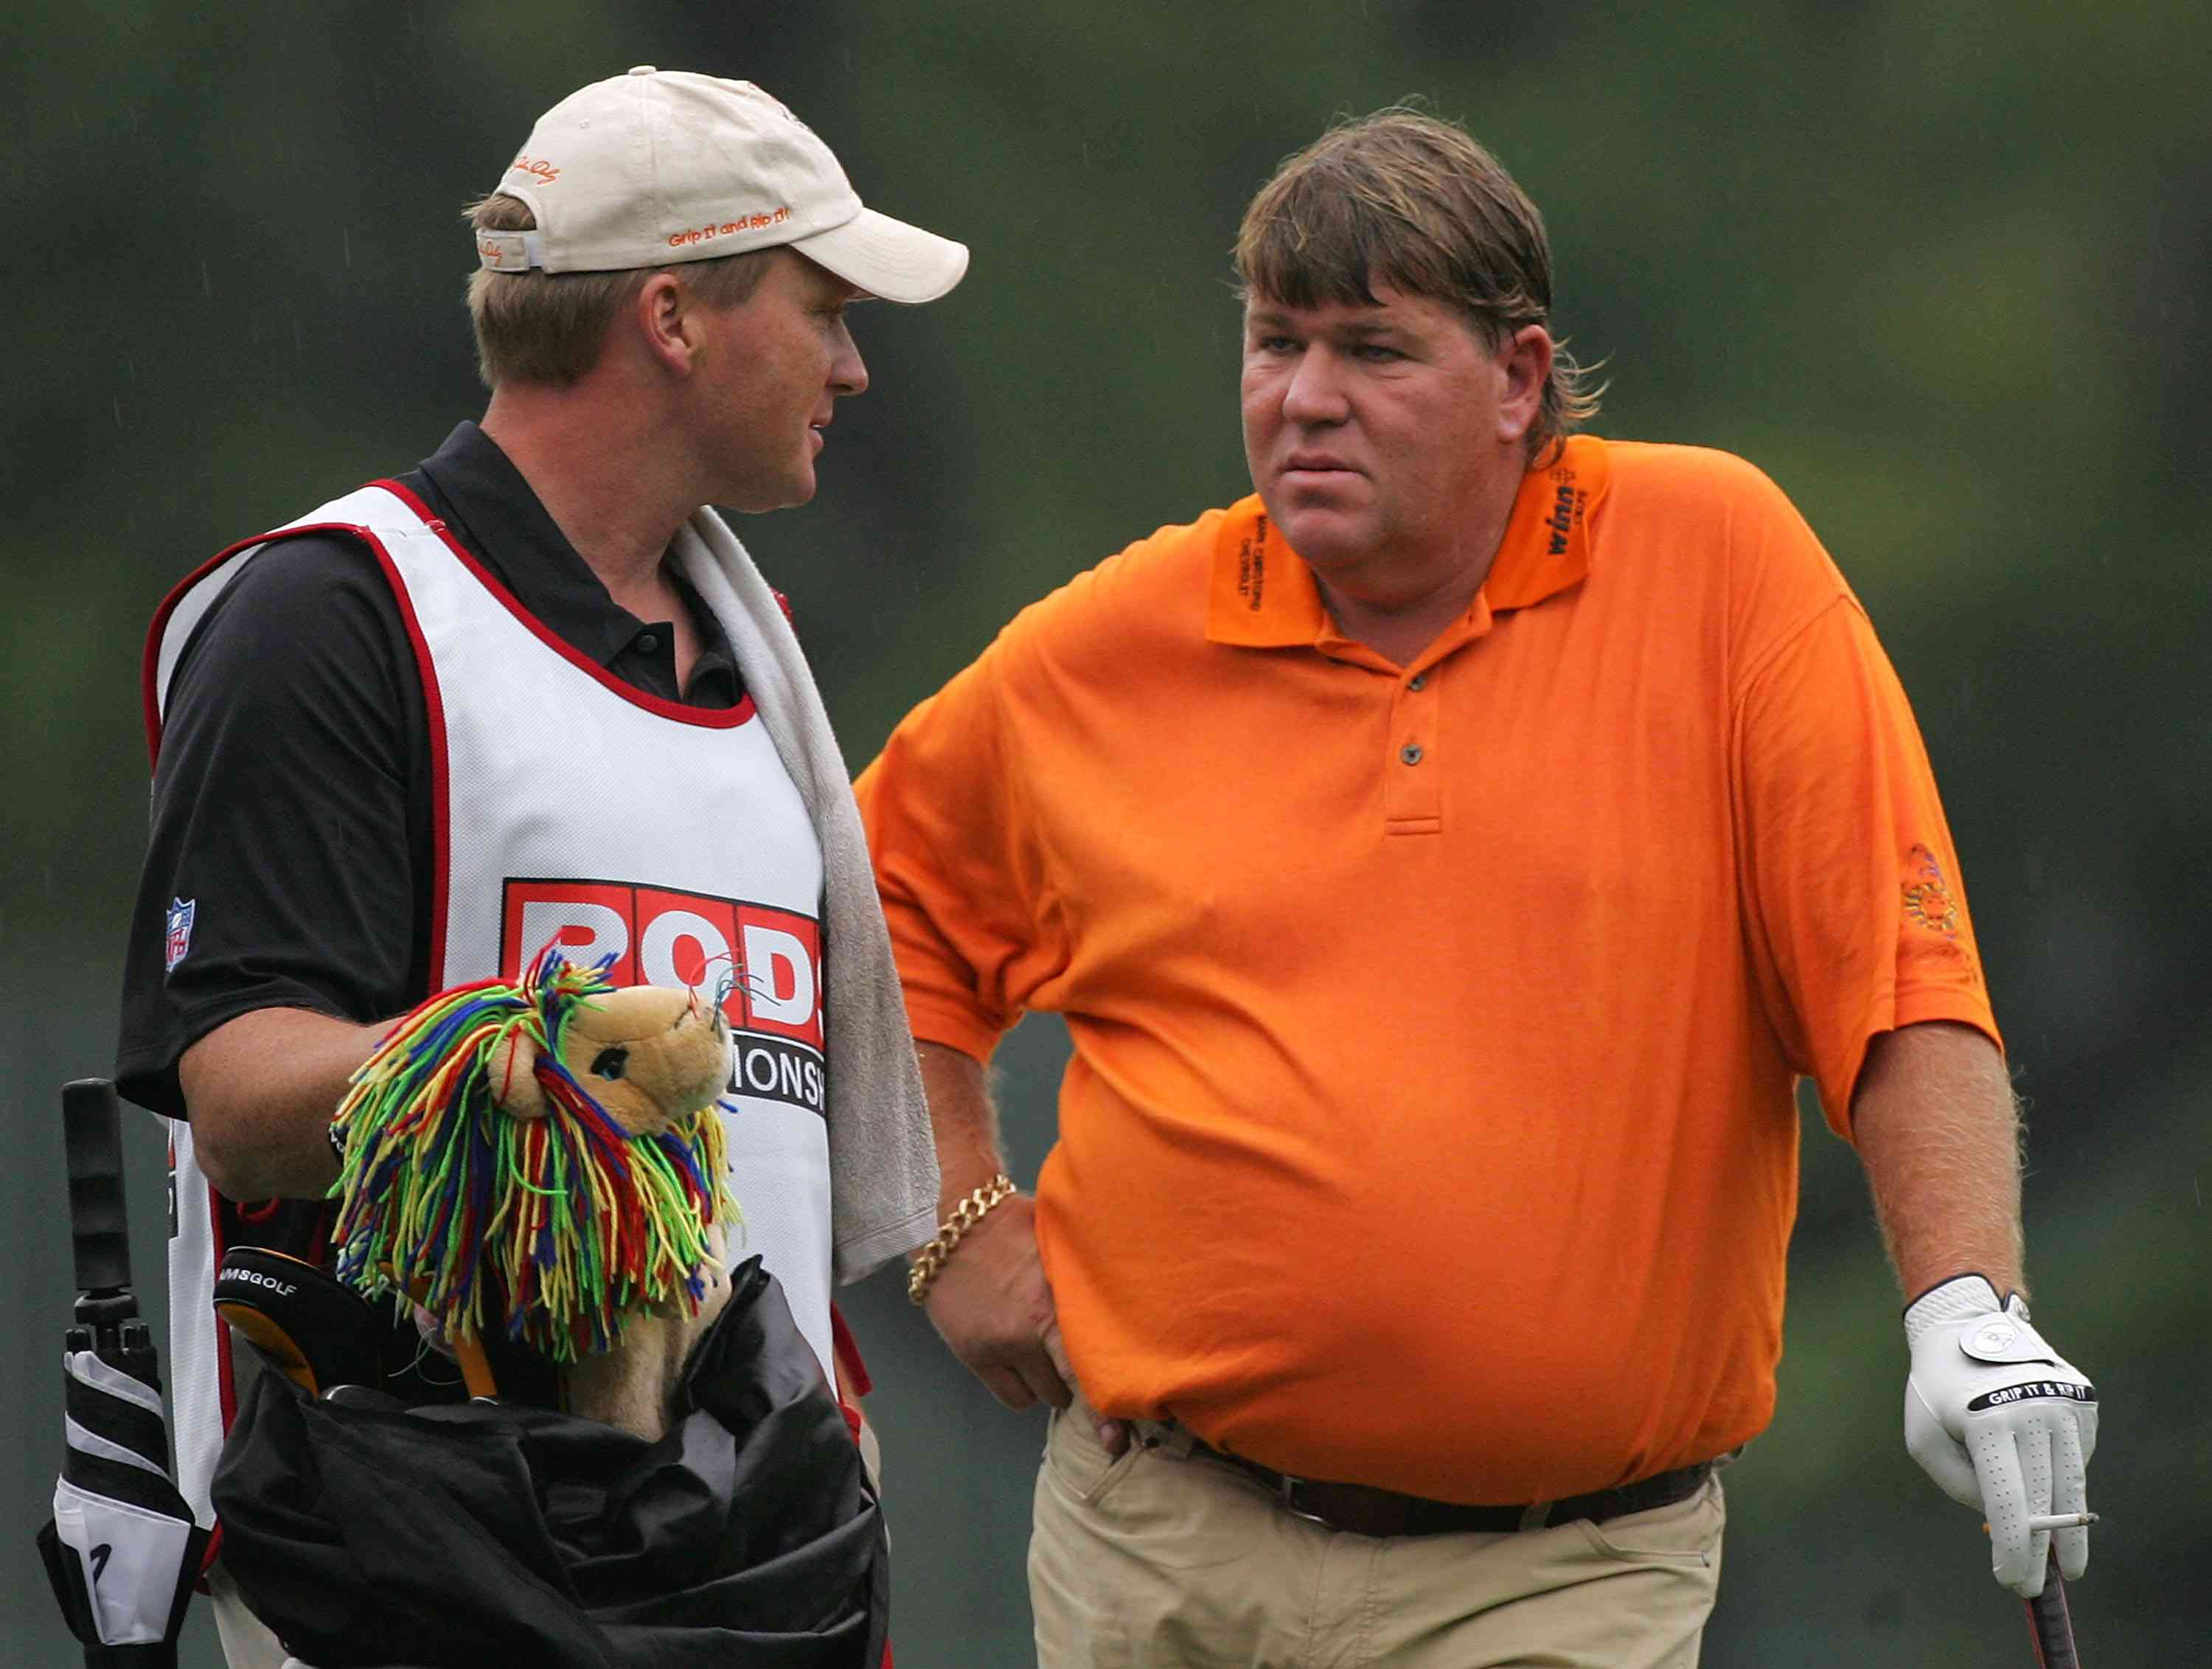 Head coach Jon Gruden of the Tampa Bay Buccaneers caddies for John Daly during the first round of the PODS Championship at Innisbrook Resort and Golf Club on March 6, 2008